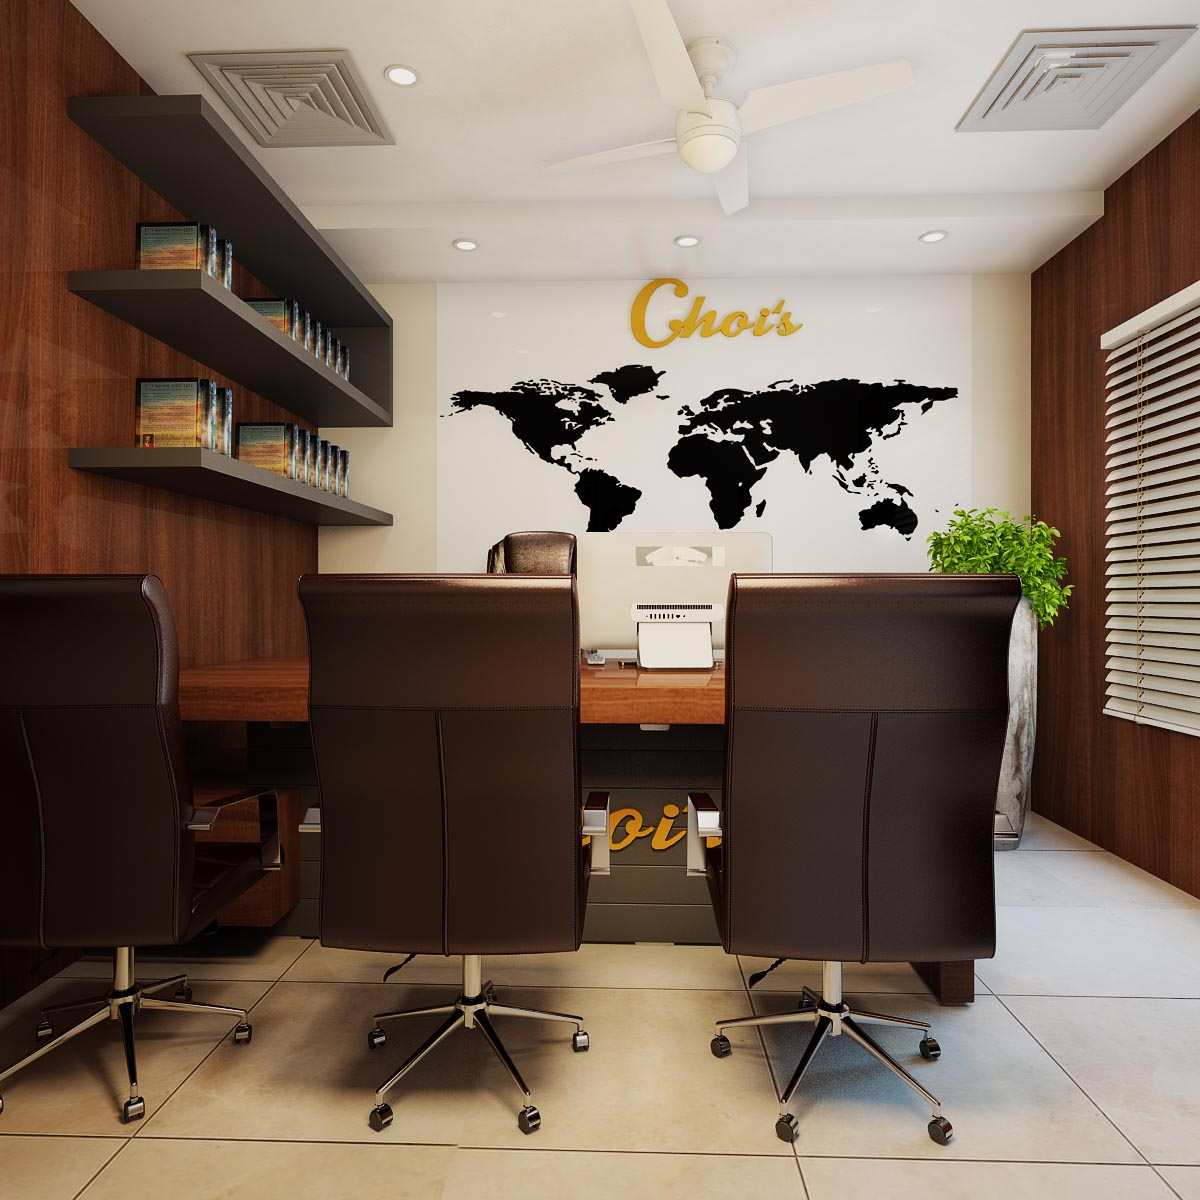 Office Interior Designs Office Decorating Ideas Modern Office Decor Ideas Online Interior Design Services